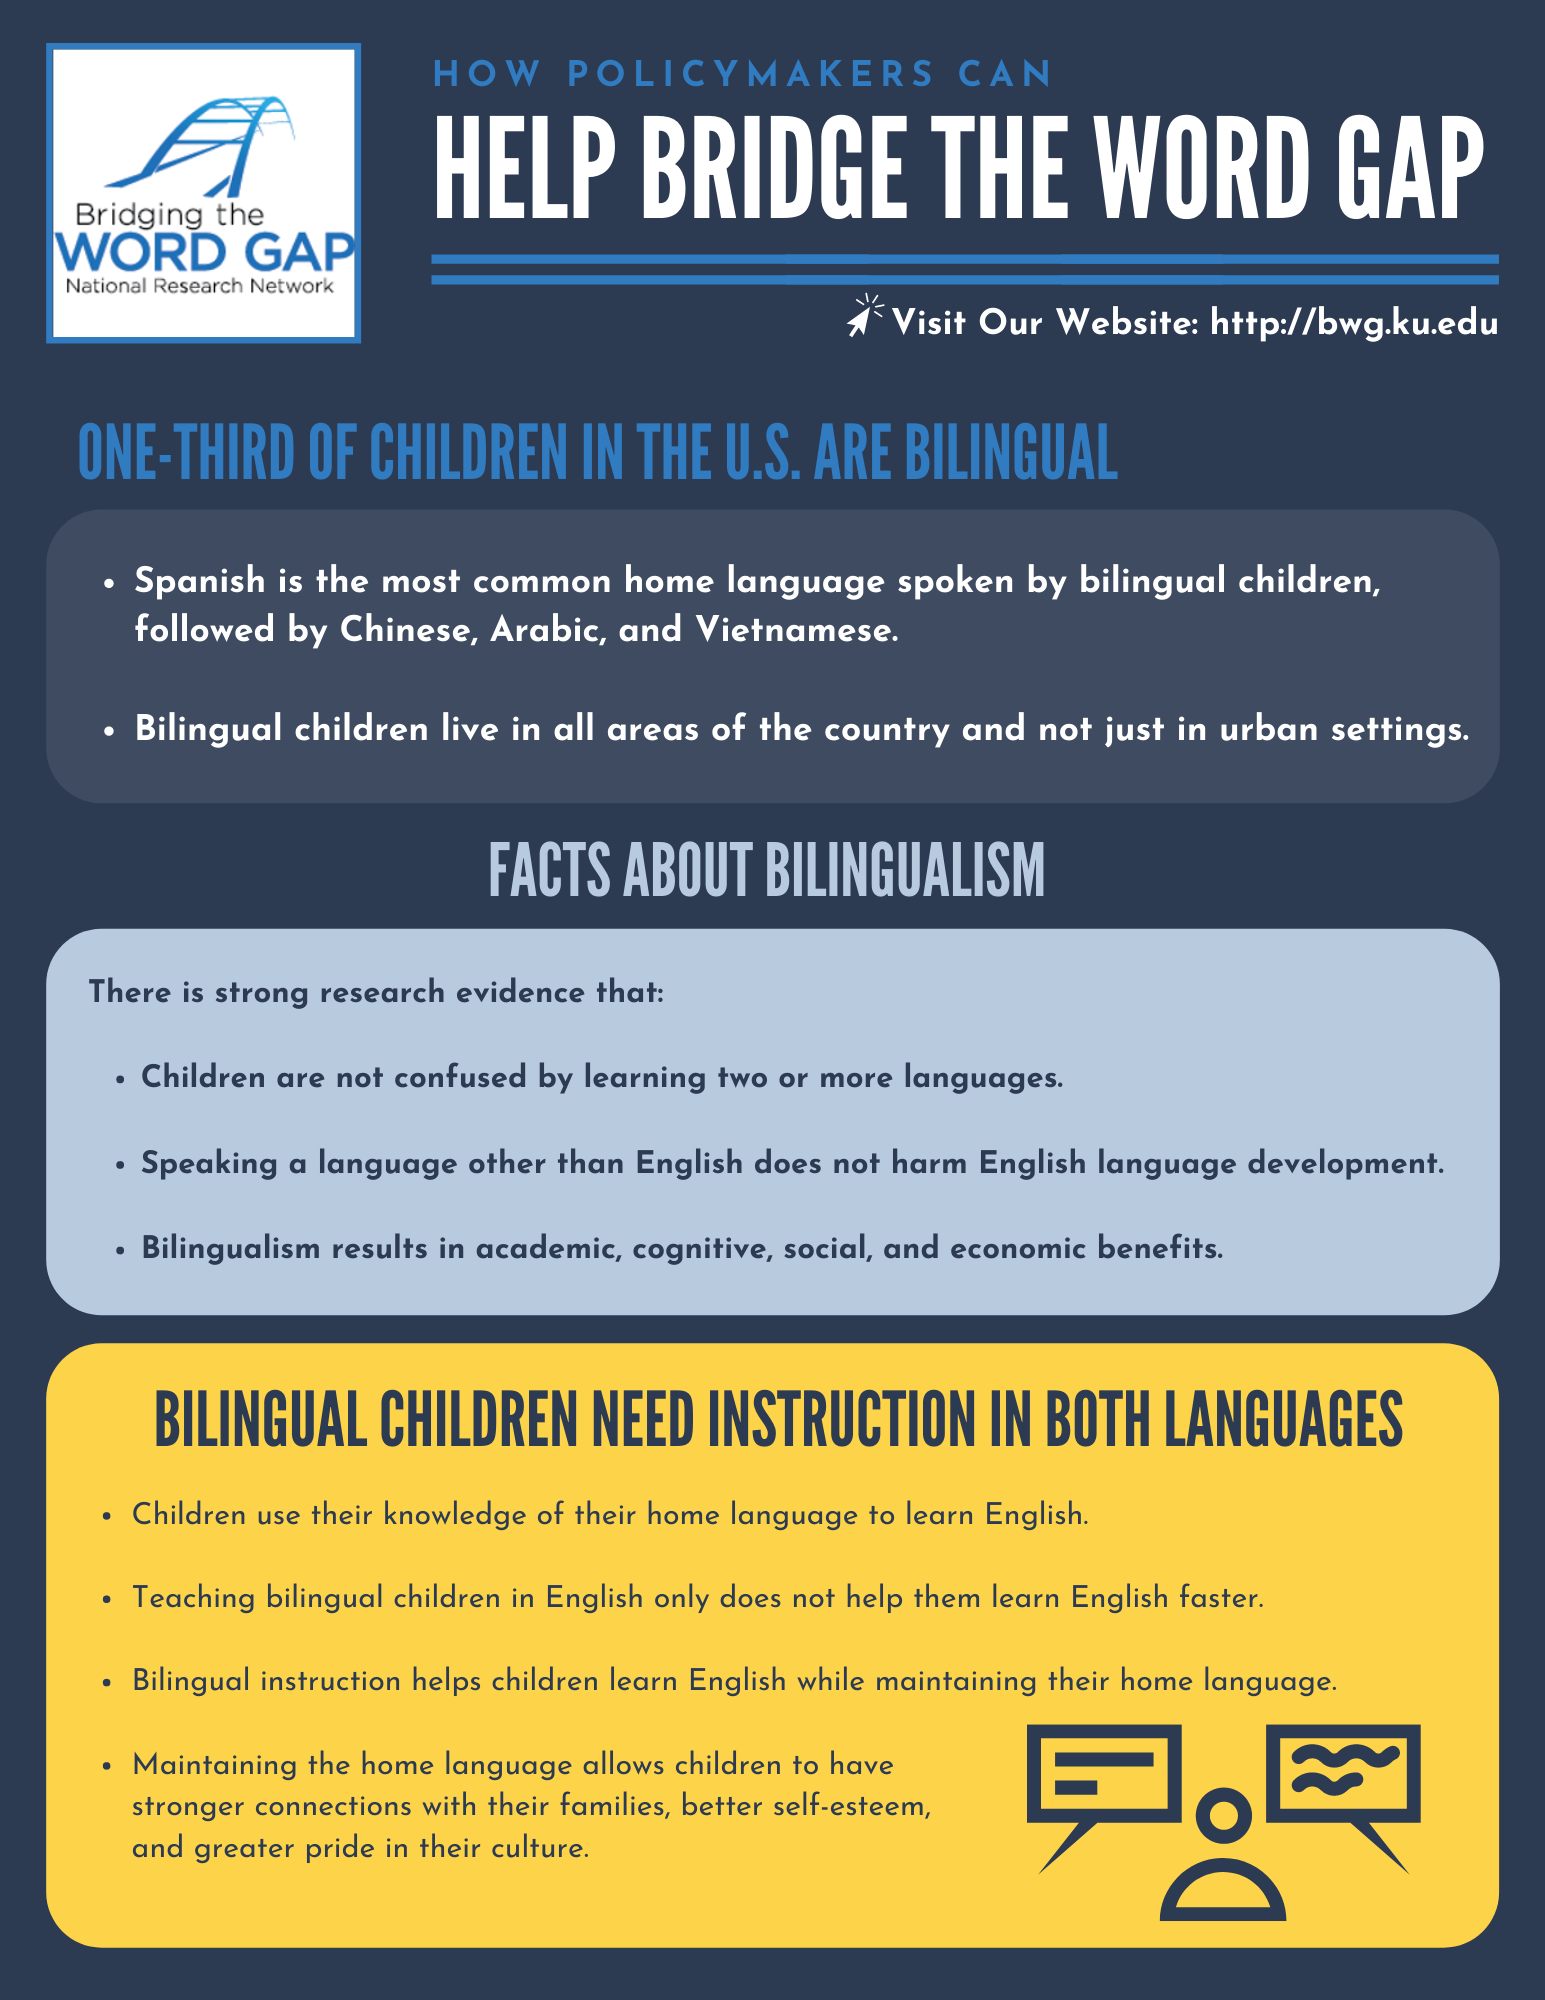 This image is the first page of the Bridging the Word Gap practitioner research brief on Dual Language Learners